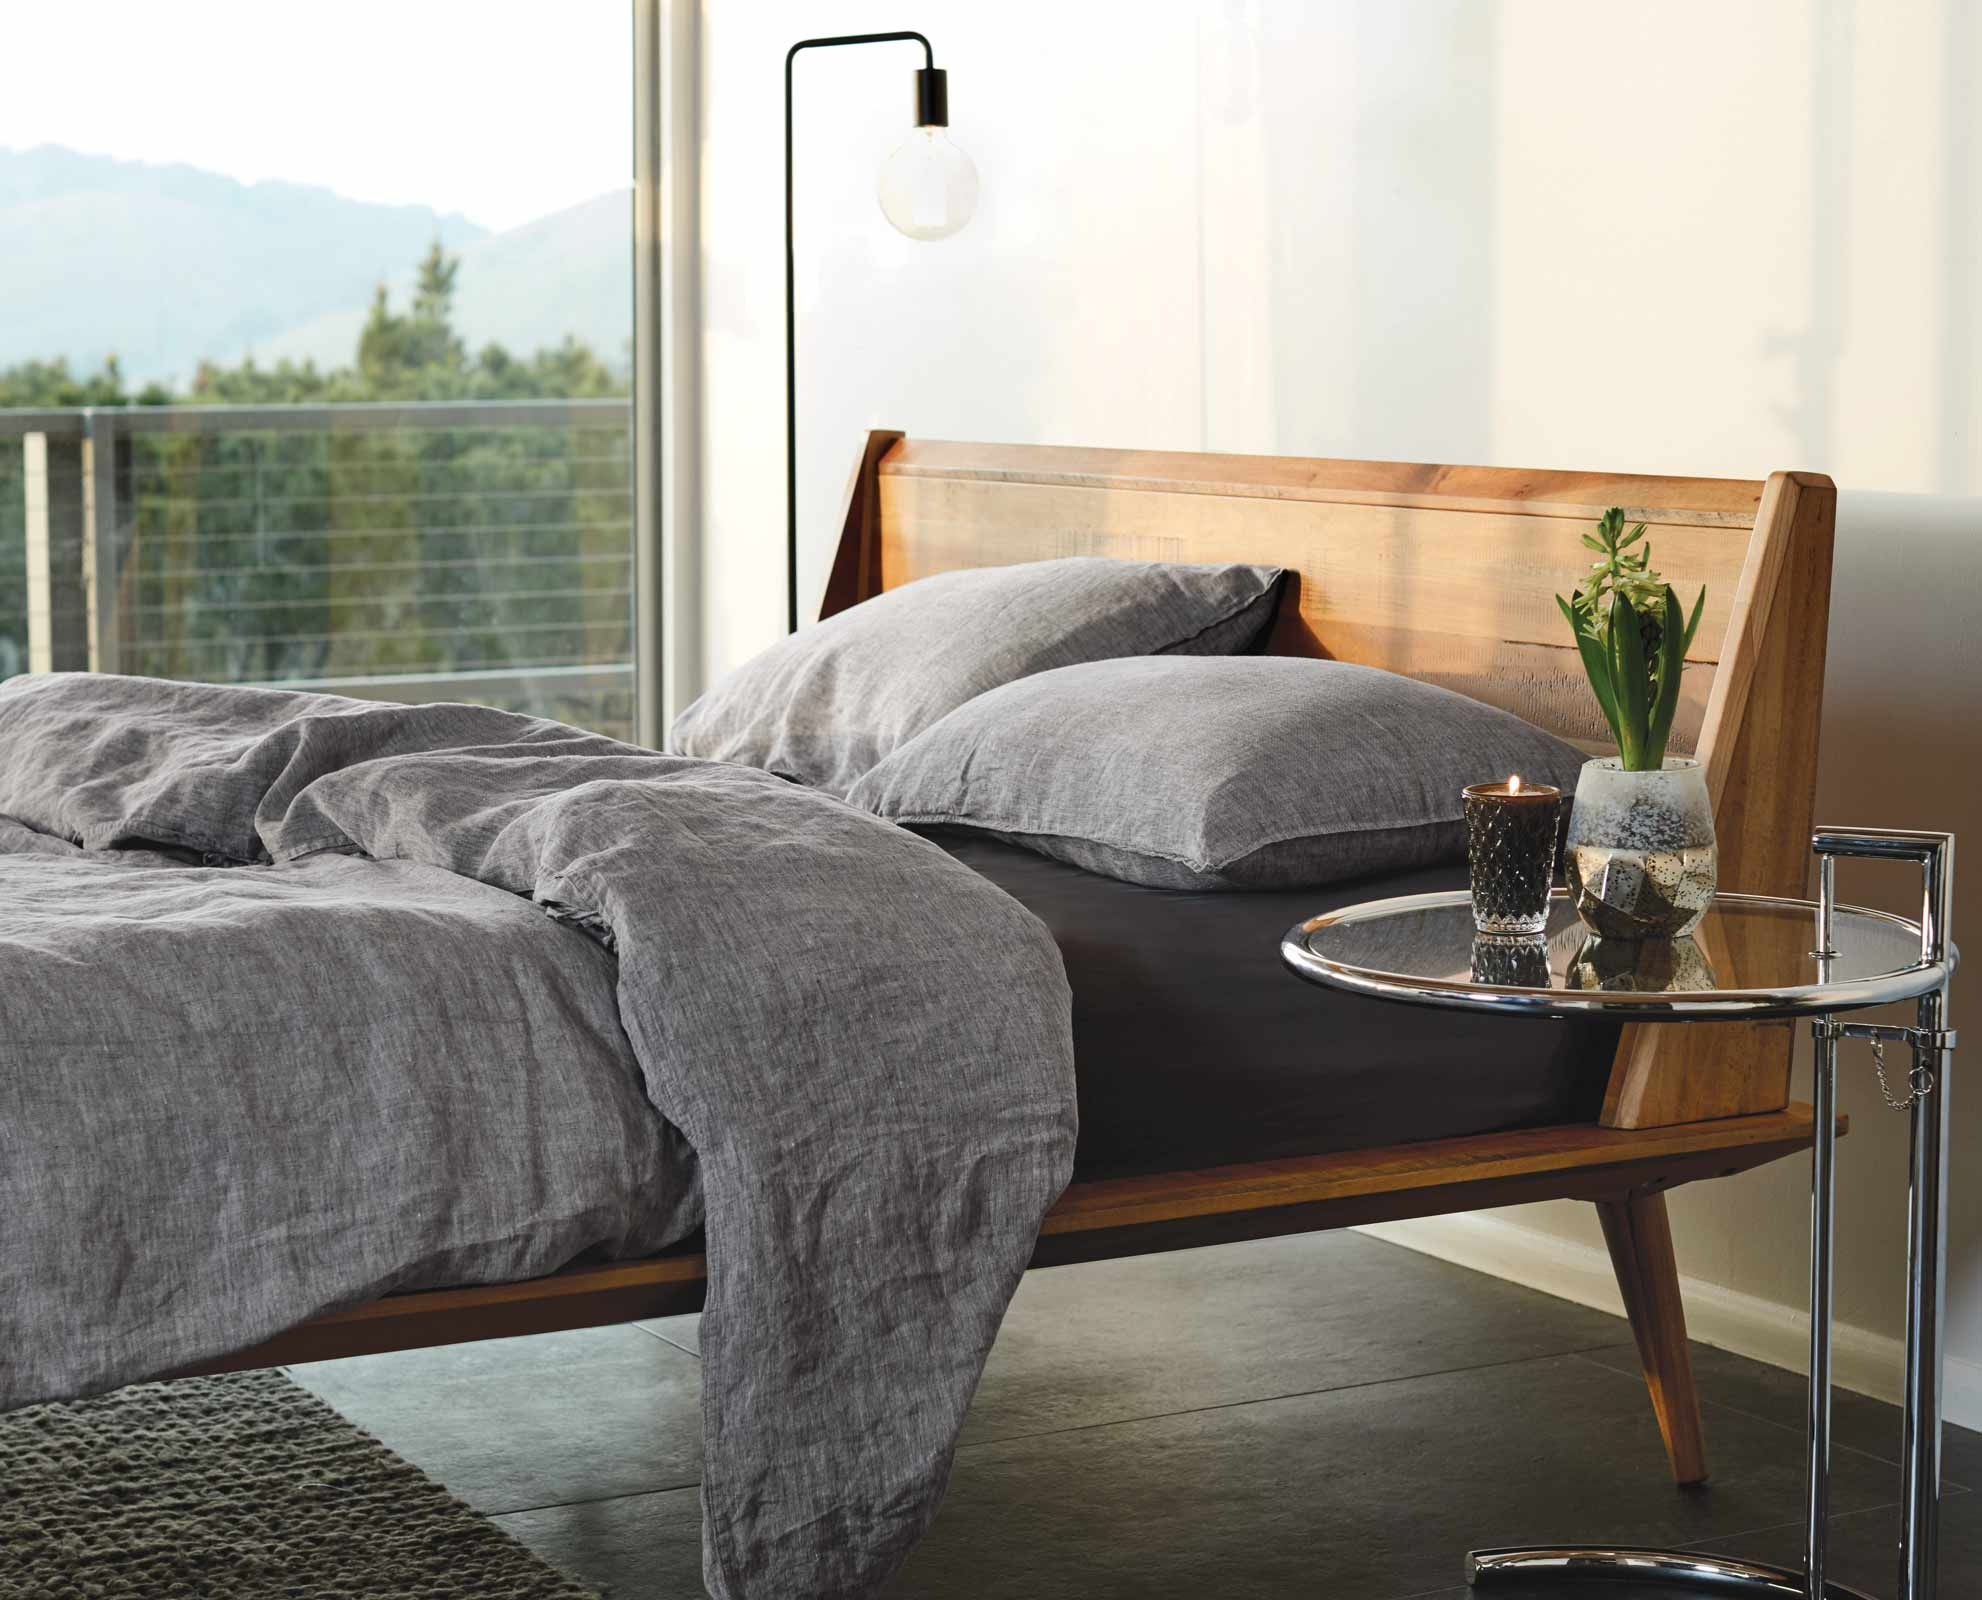 Best Bolig Bed Home Decor Apartment Inspiration Bed Design 640 x 480